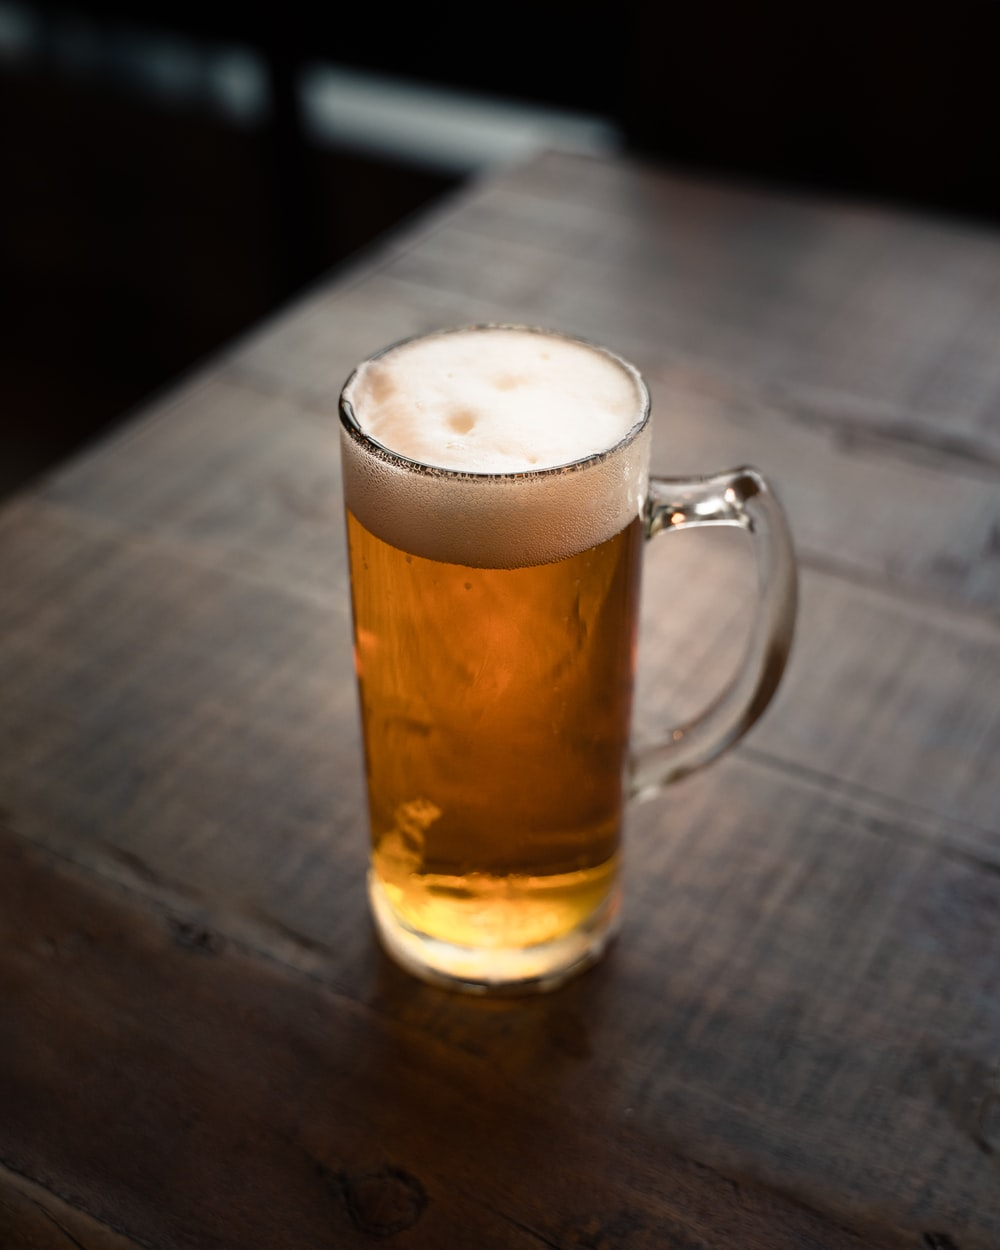 full clear glass beer mug